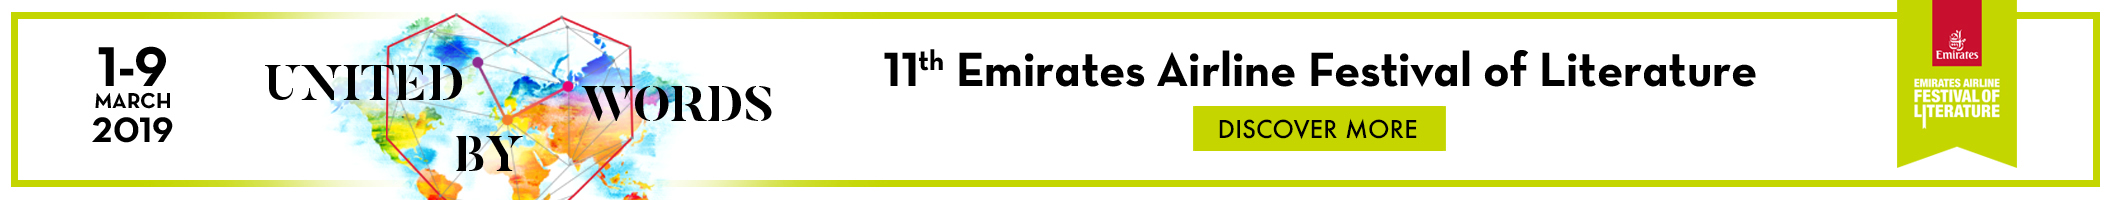 Emirates Airline Festival of Literature home page banner 2112x200